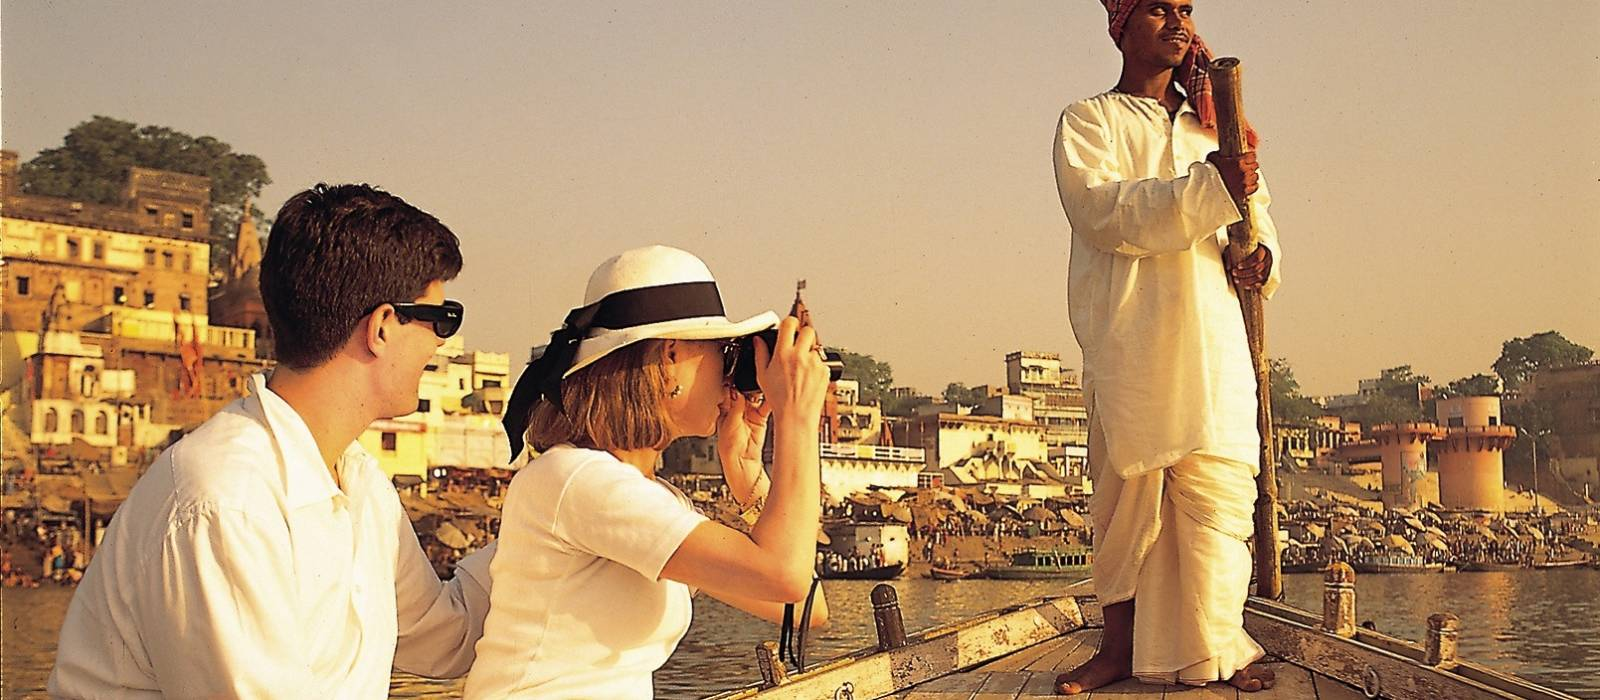 Rajasthan culture - Things to do in North India